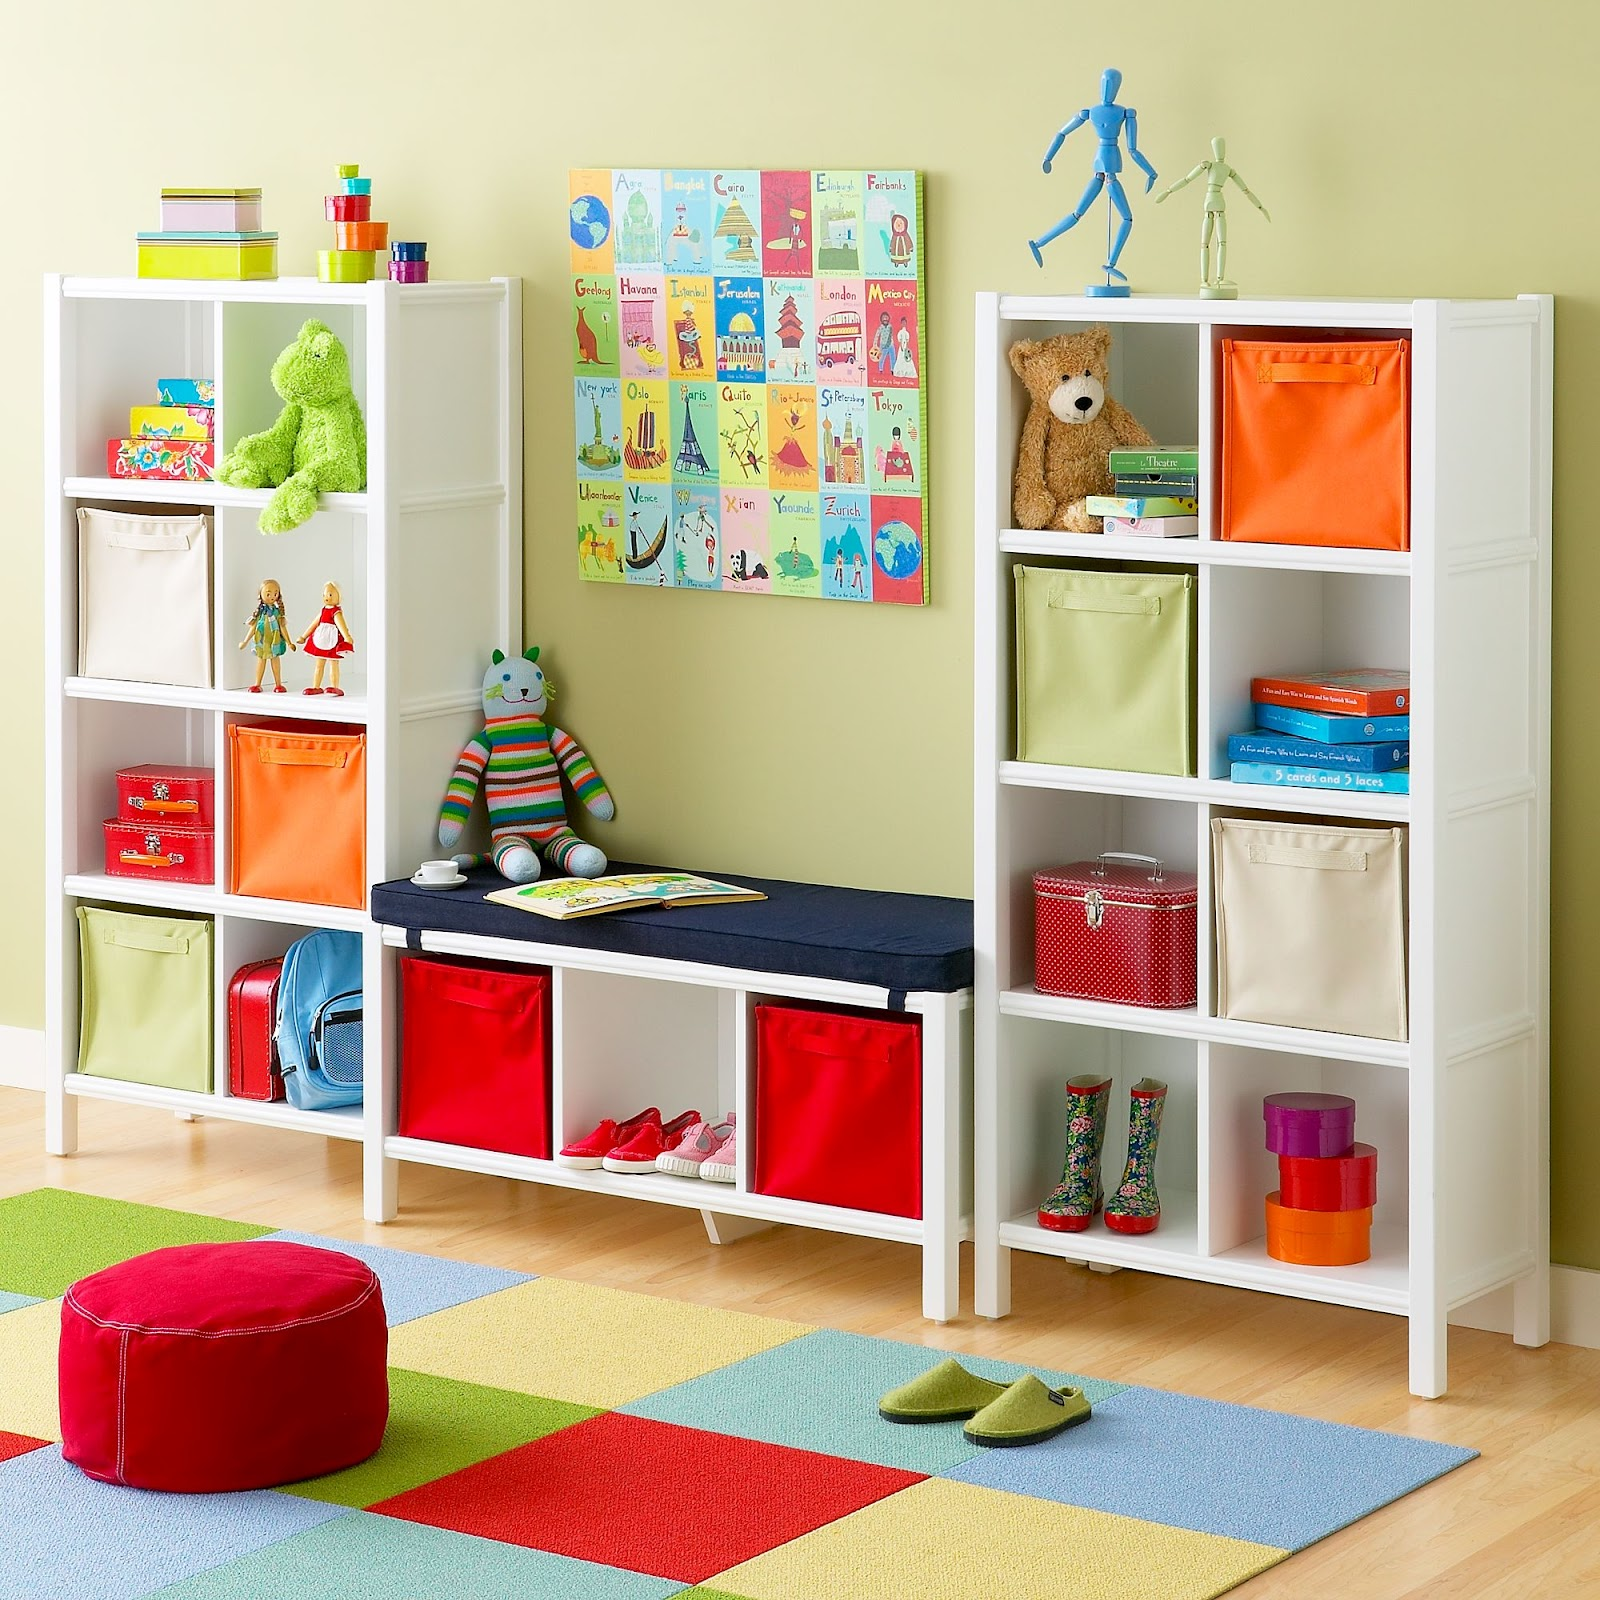 Small Bedroom Design Ideas For Kids Rooms: Kids Playroom Designs & Ideas